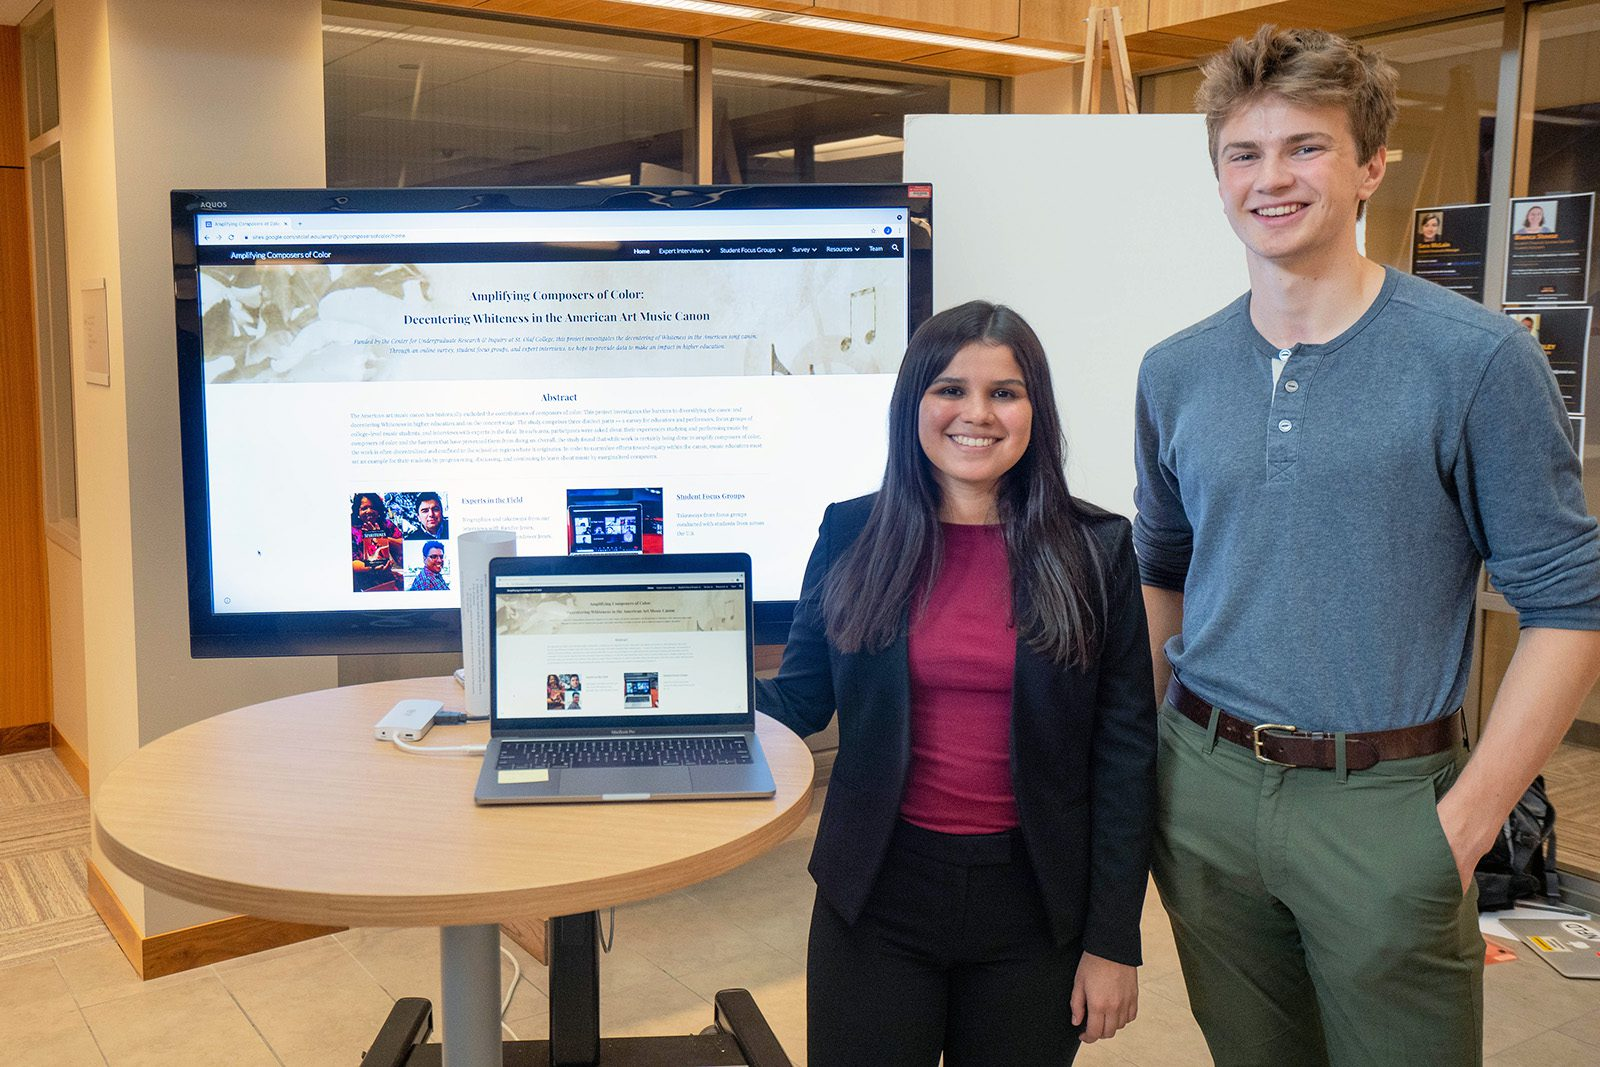 """Jimena Fernández '22 (left) and Elijah Leer '22 (right) present their Collaborative Undergraduate Research and Inquiry (CURI) project titled """"Amplifying Composers of Color: Decentering Whiteness in the American Art Music Canon."""""""